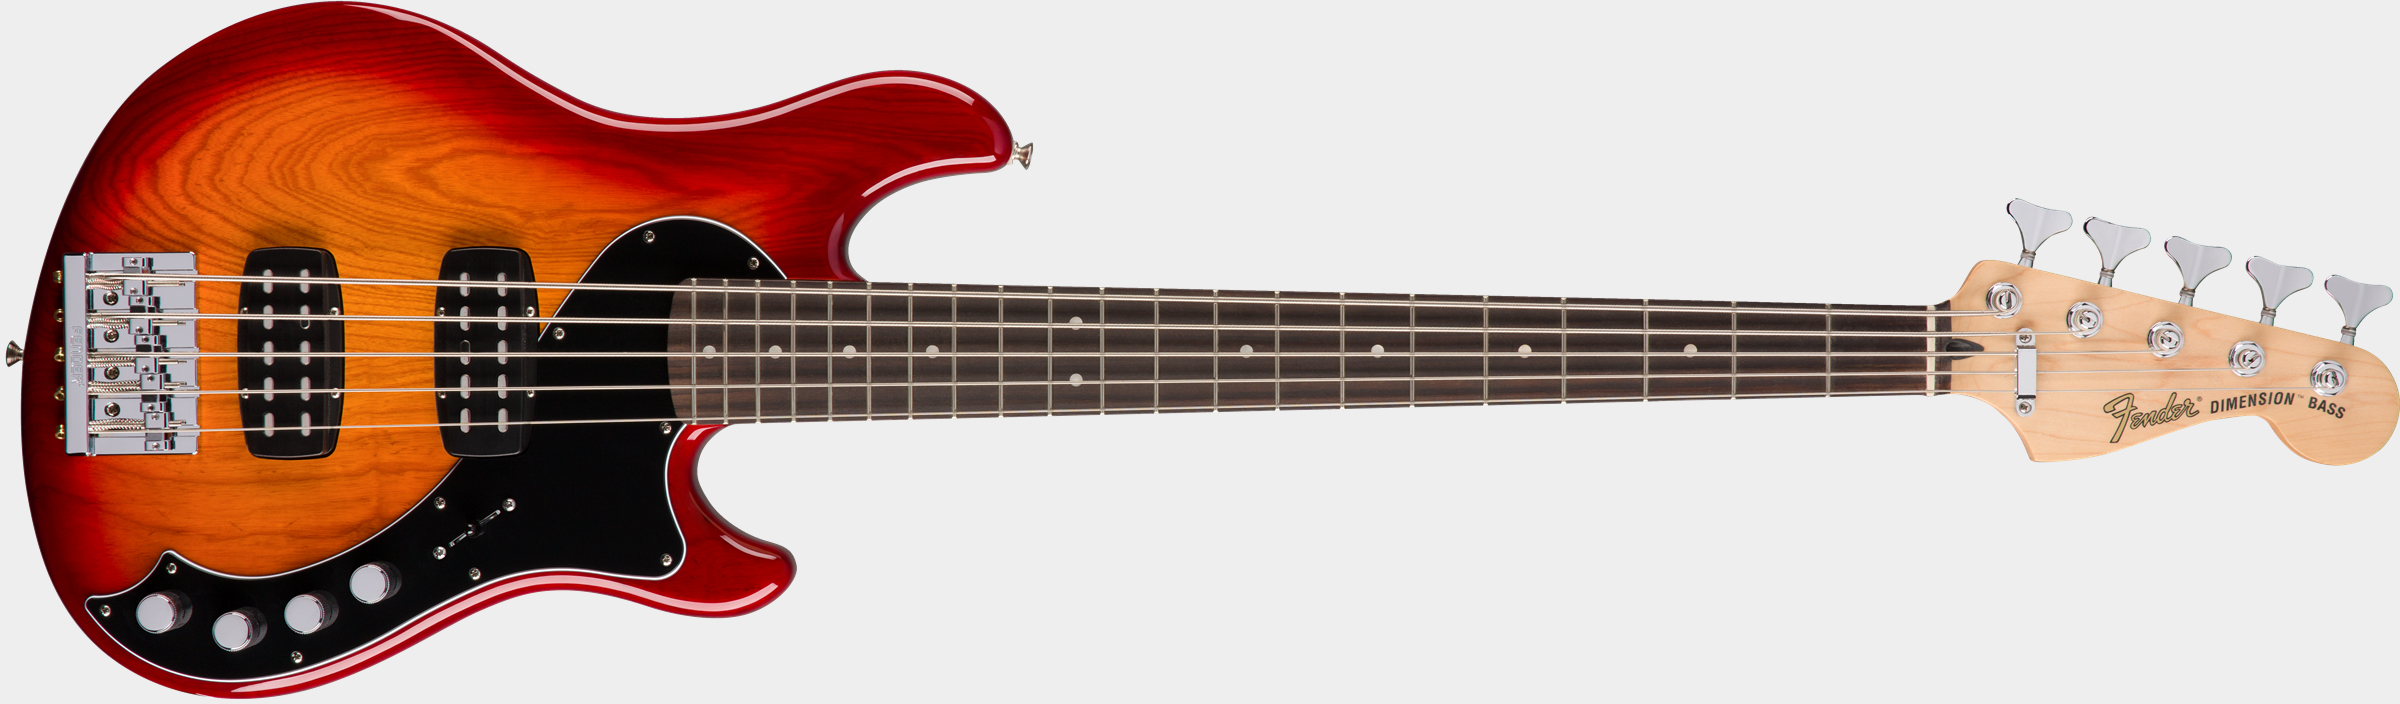 FENDER Deluxe Dimension Bass V RW Aged Cherry Burst